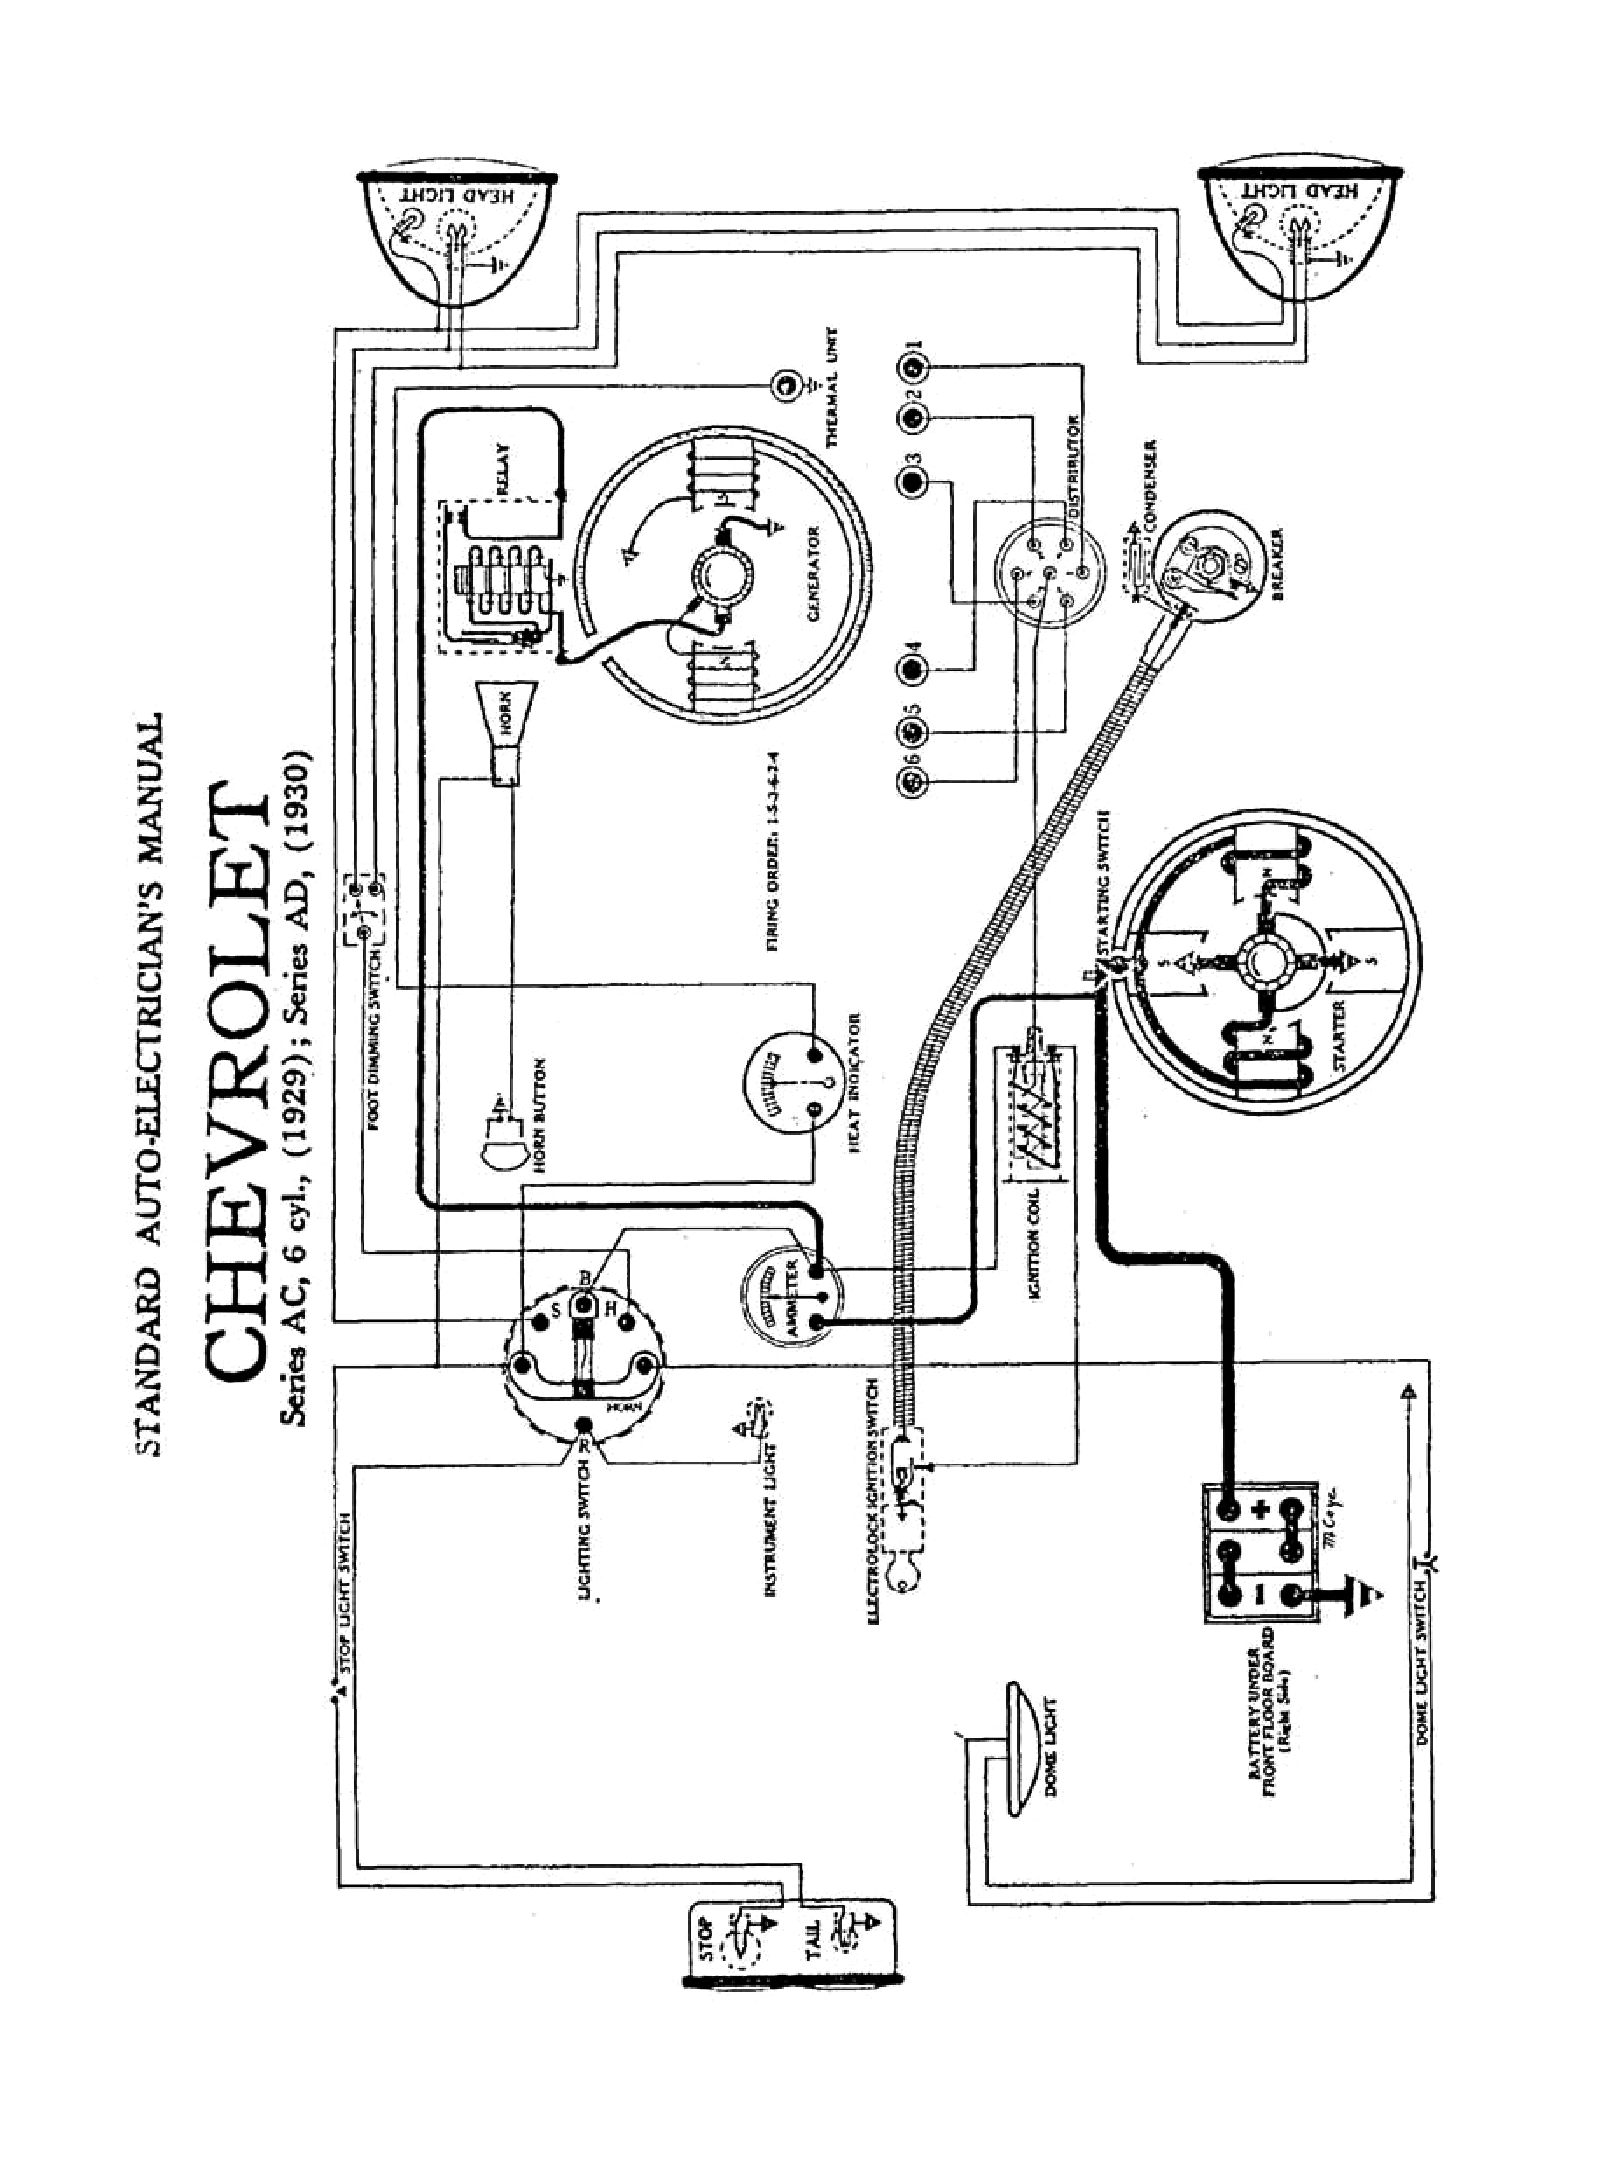 Wiring A Schematic In Series